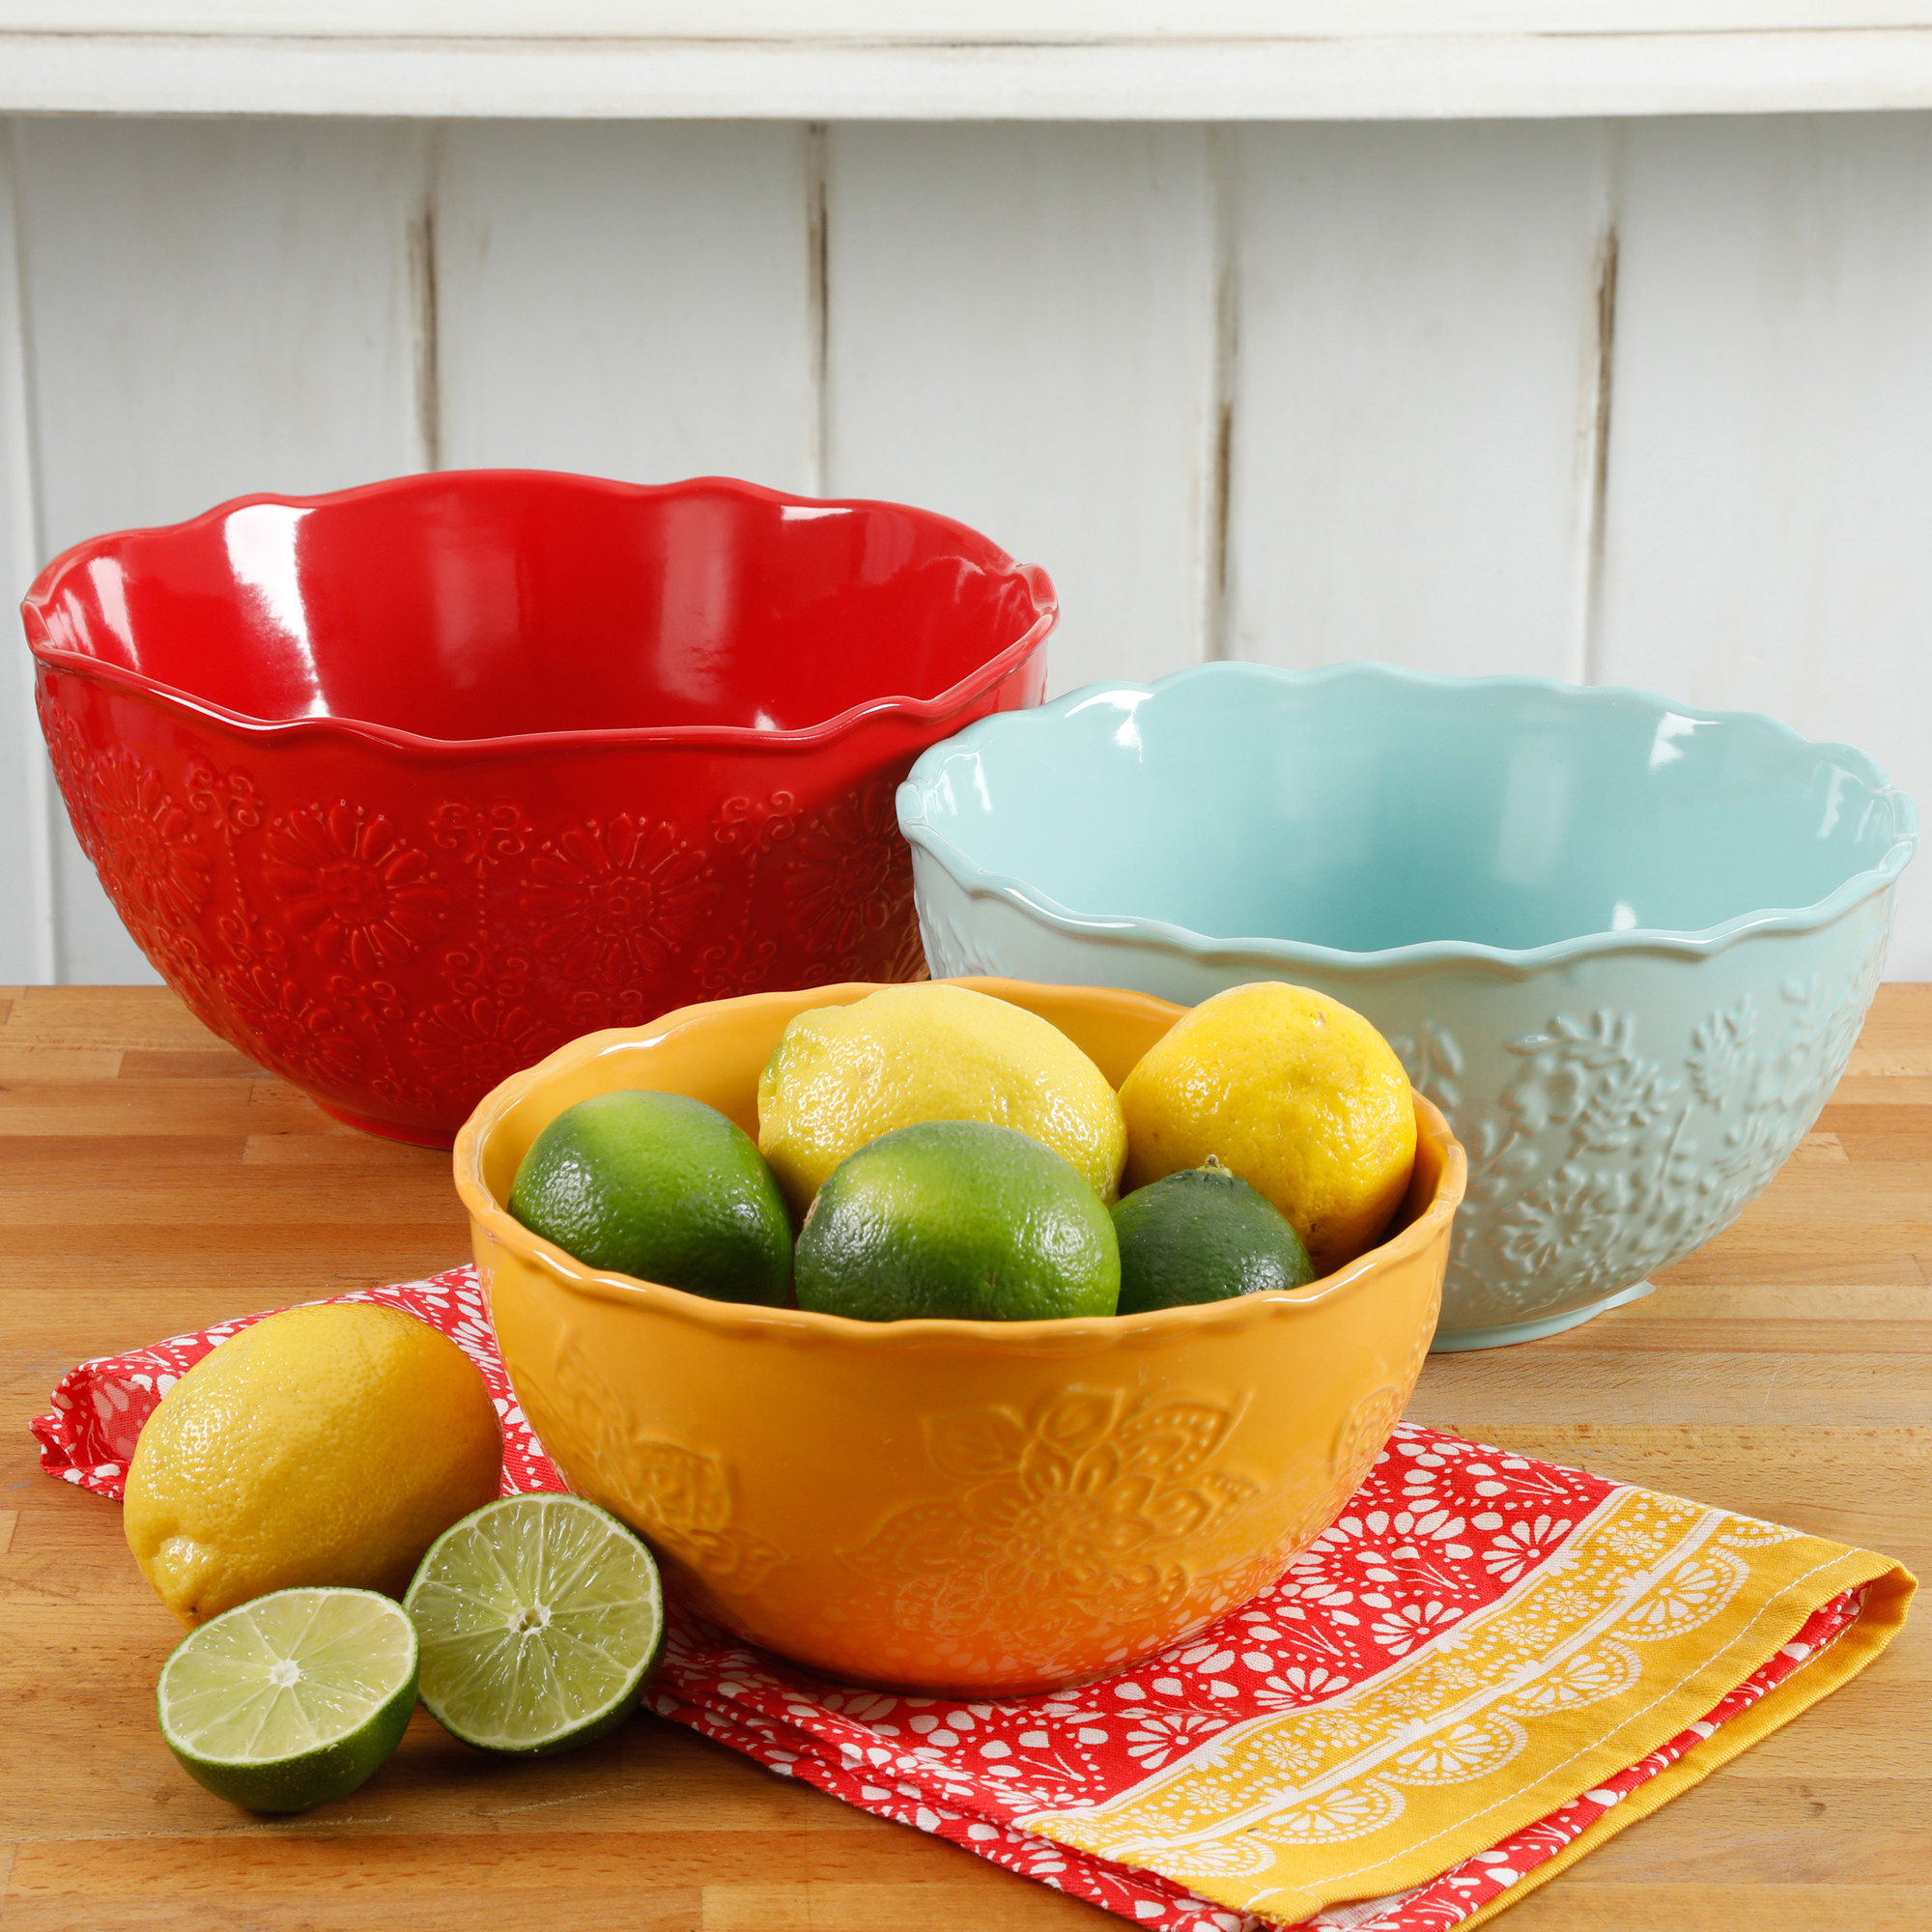 The three serving bowls in red orange and light blue, with one holding limes and lemons to show its size